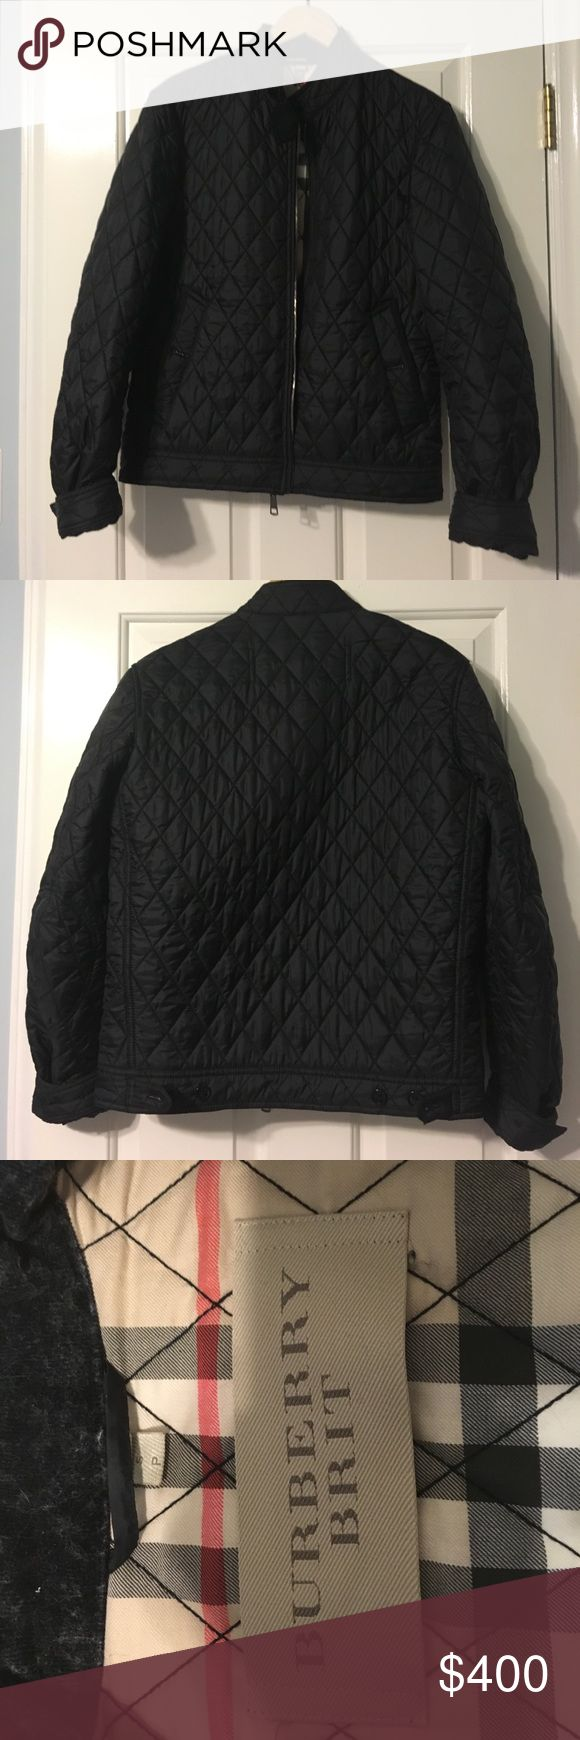 Burberry Brit jacket, small petite, worn once! Burberry Brit jacket, small petite, worn once! Black. Excellent condition. Burberry Jackets & Coats